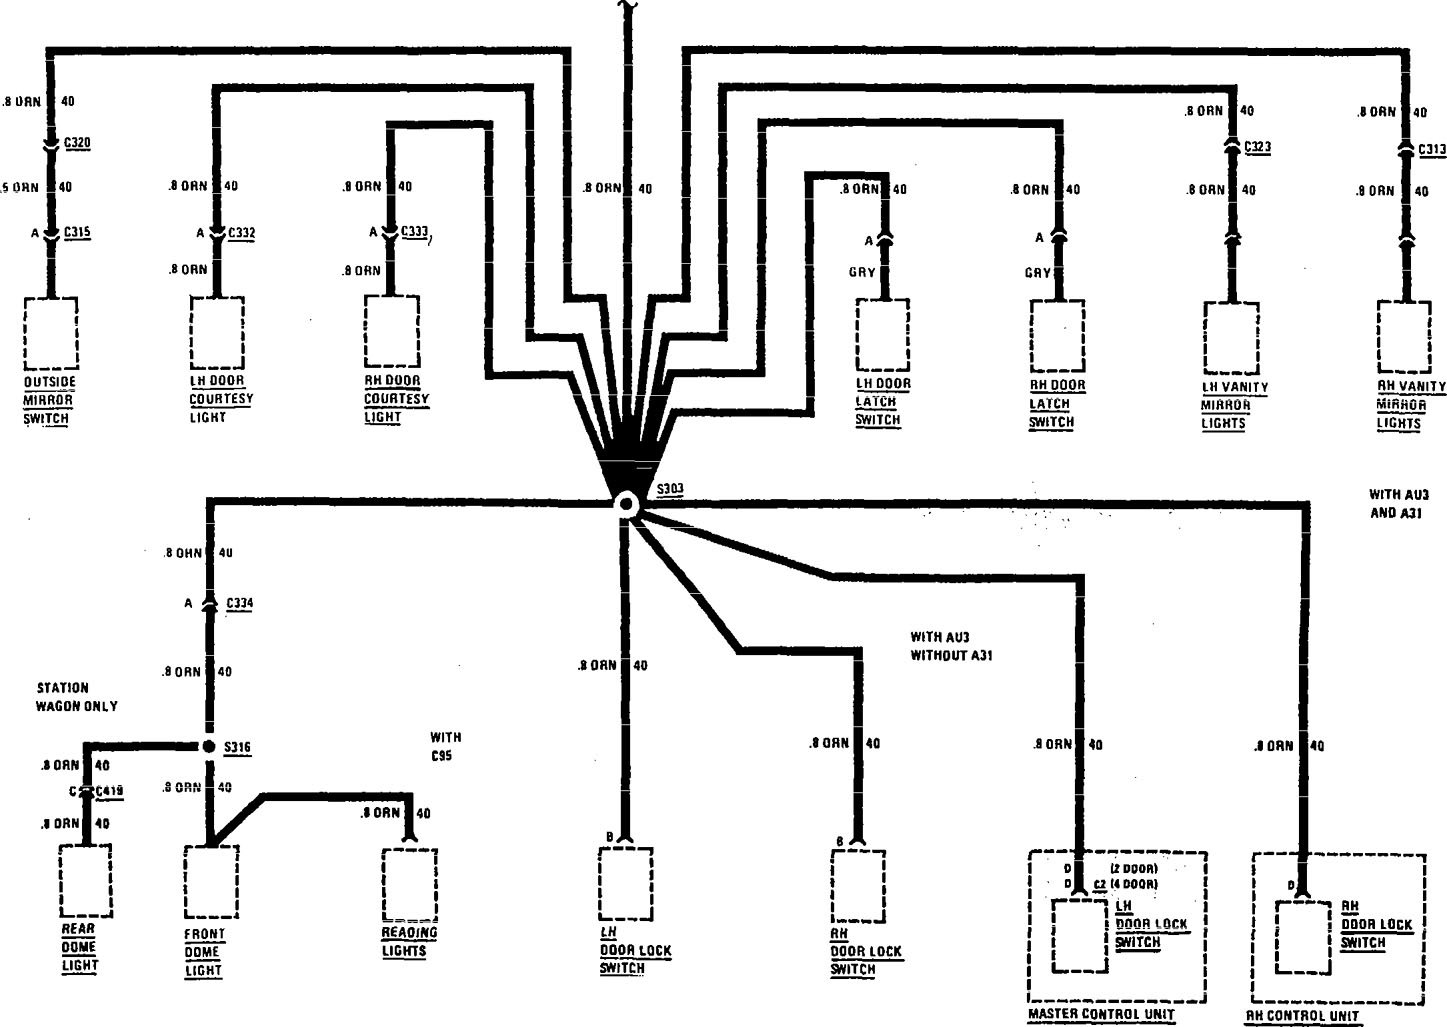 1991 Buick Regal Fuse Box Diagram Wiring Library Century 91 Panel Auto 84